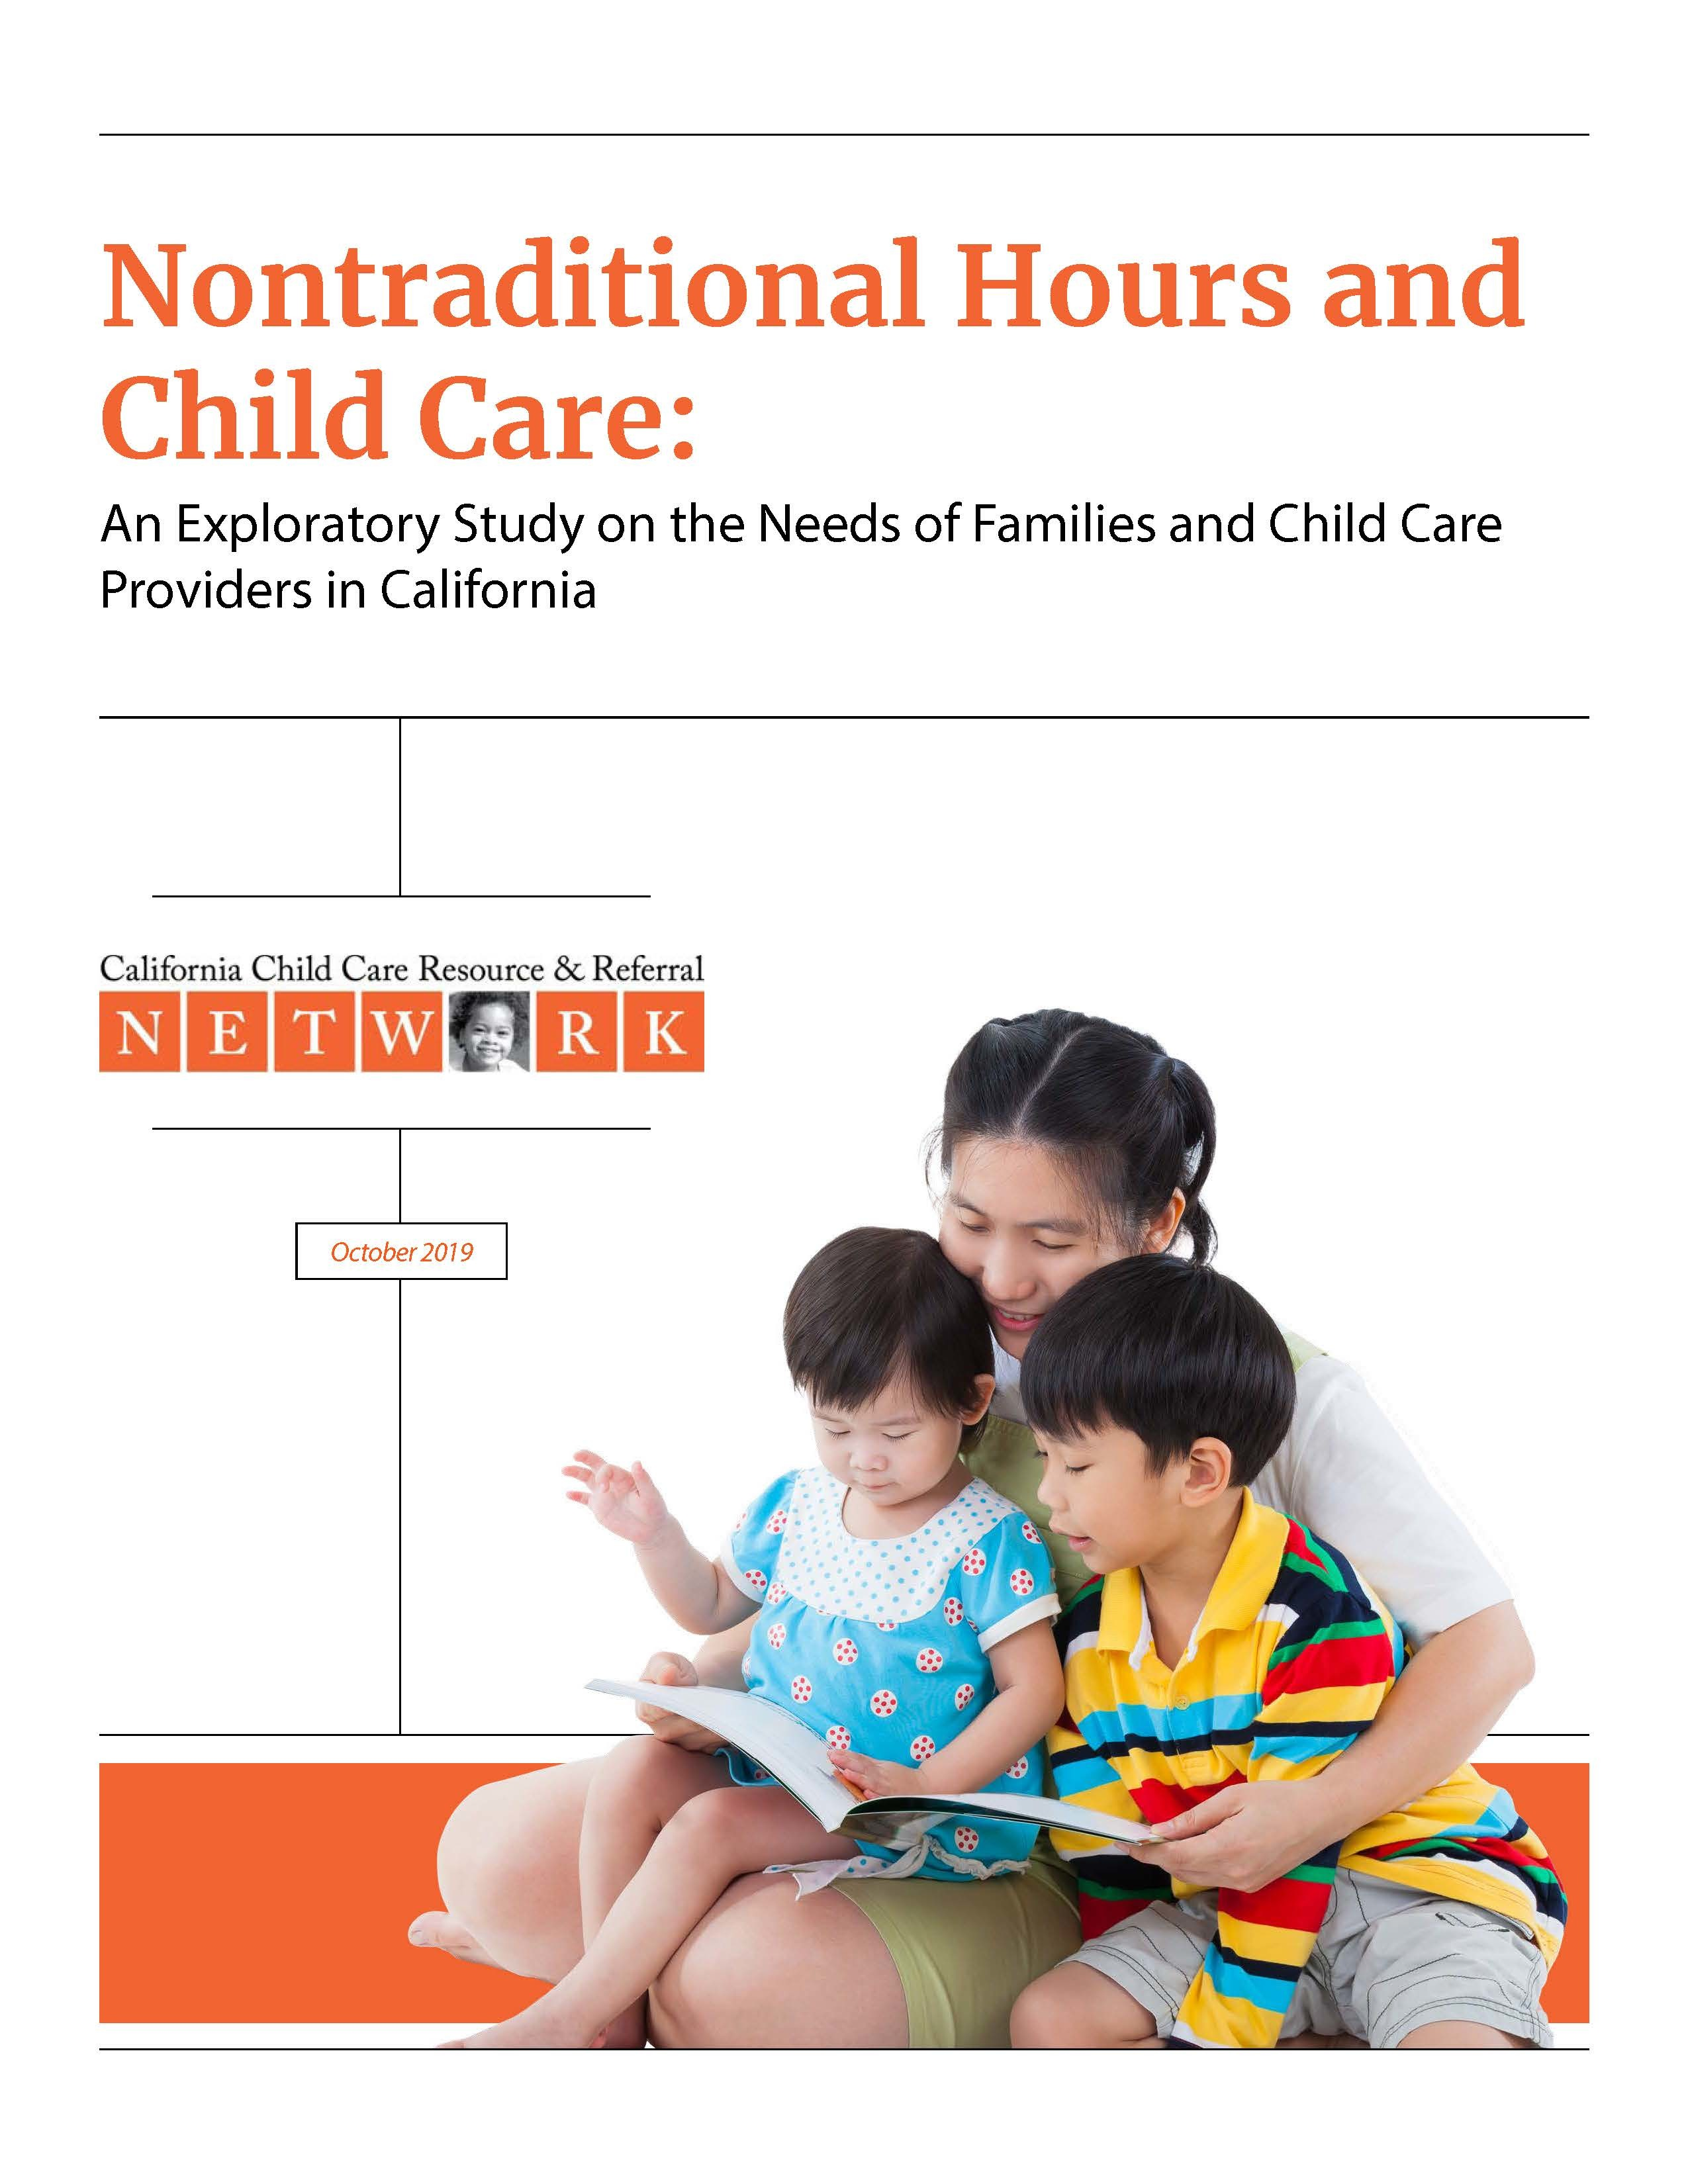 Nontraditional Hours and Child Care - Final Report